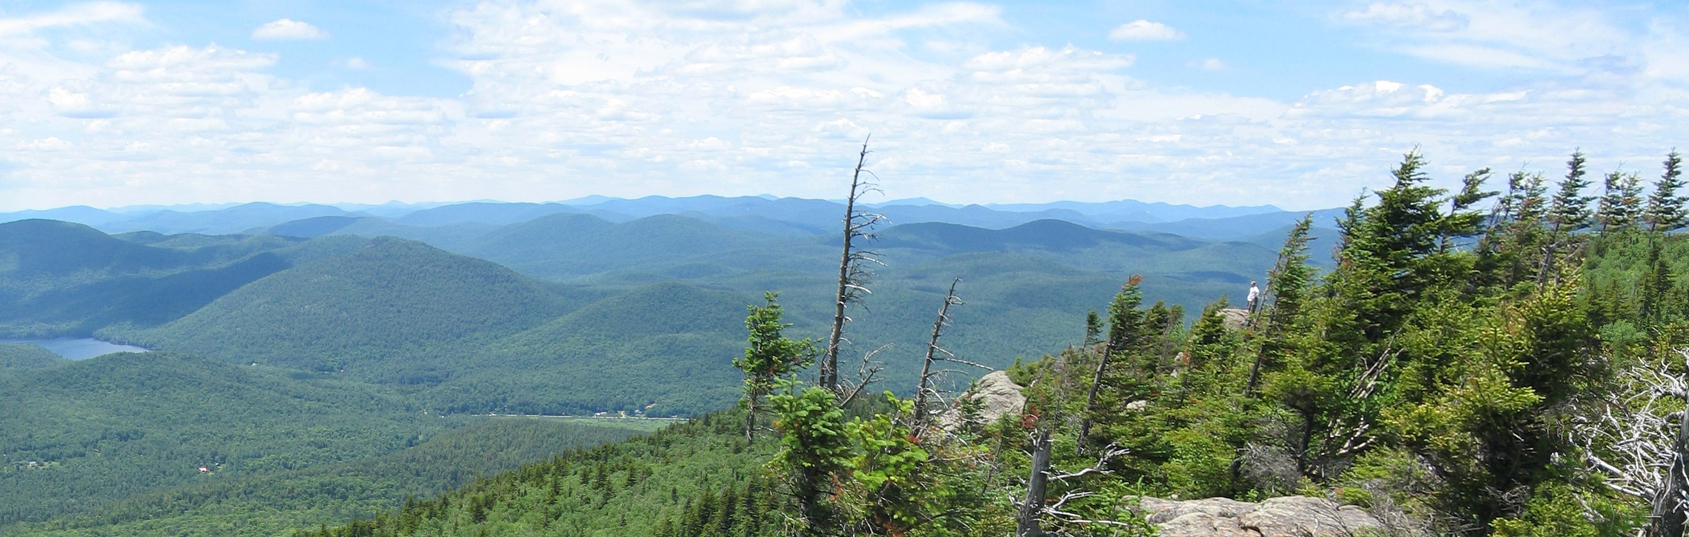 Panoramic view of Southern Adirondack Region